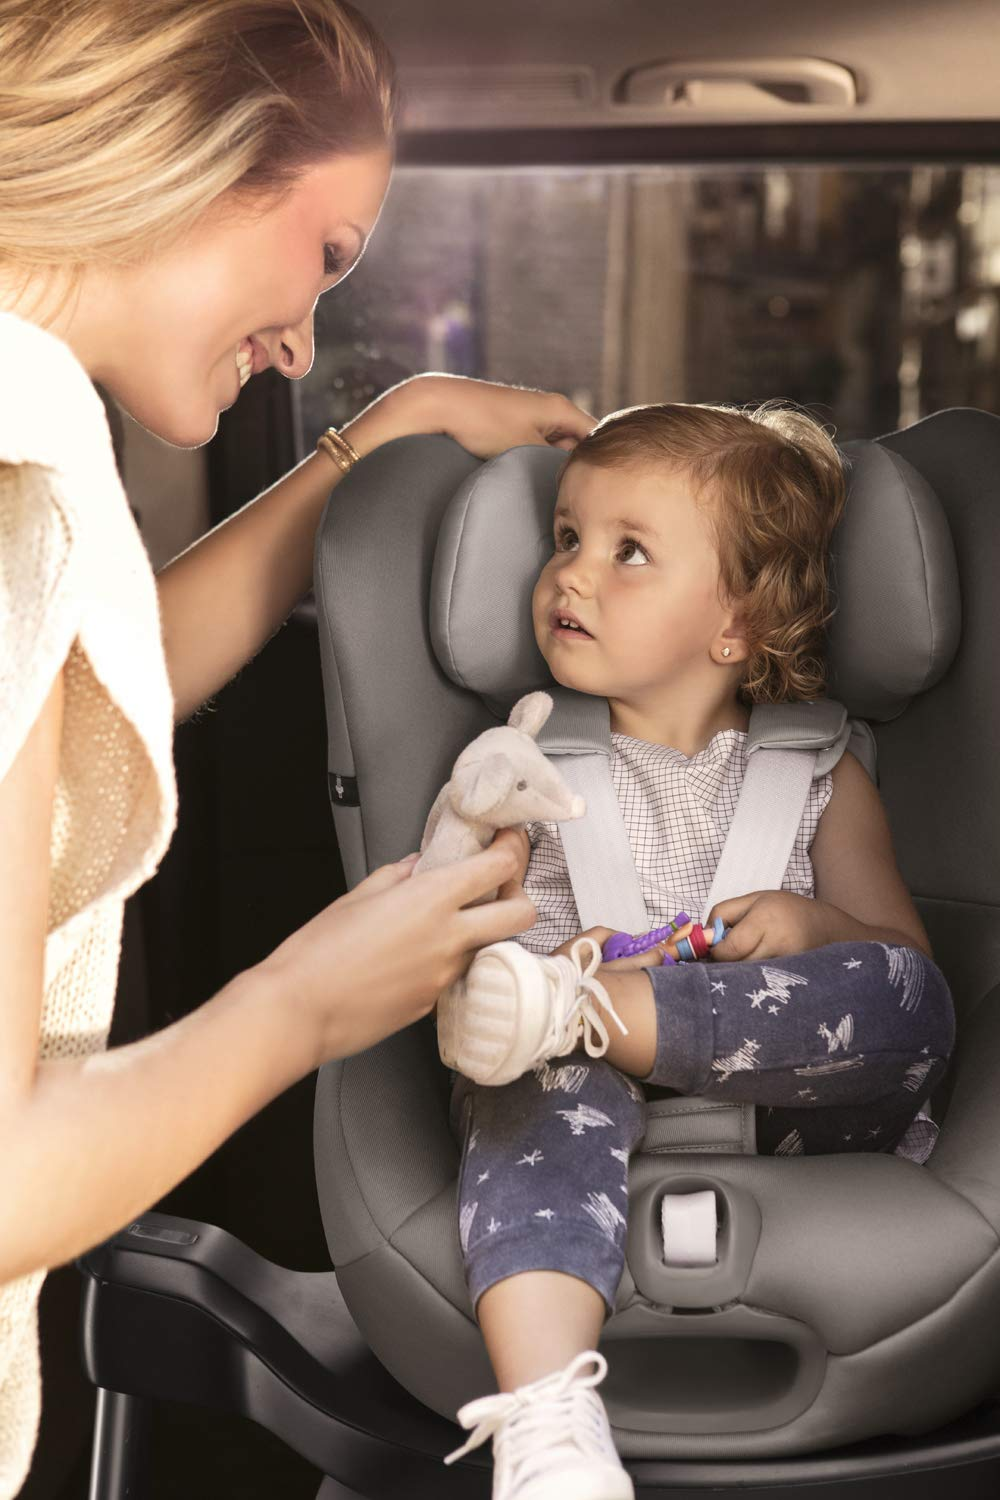 CYBEX Gold Sirona S i-Size Car Seat with 360° Swivel Mechanism and ISOFIX, Incl. SensorSafe chest clip, From Birth to approx. 4 years, Up to Max. 105 cm Height, Fancy Pink  Cybex gold car seat sirona s i-size incl. sensorsafe Item number: 519001863 Colour: fancy pink 7